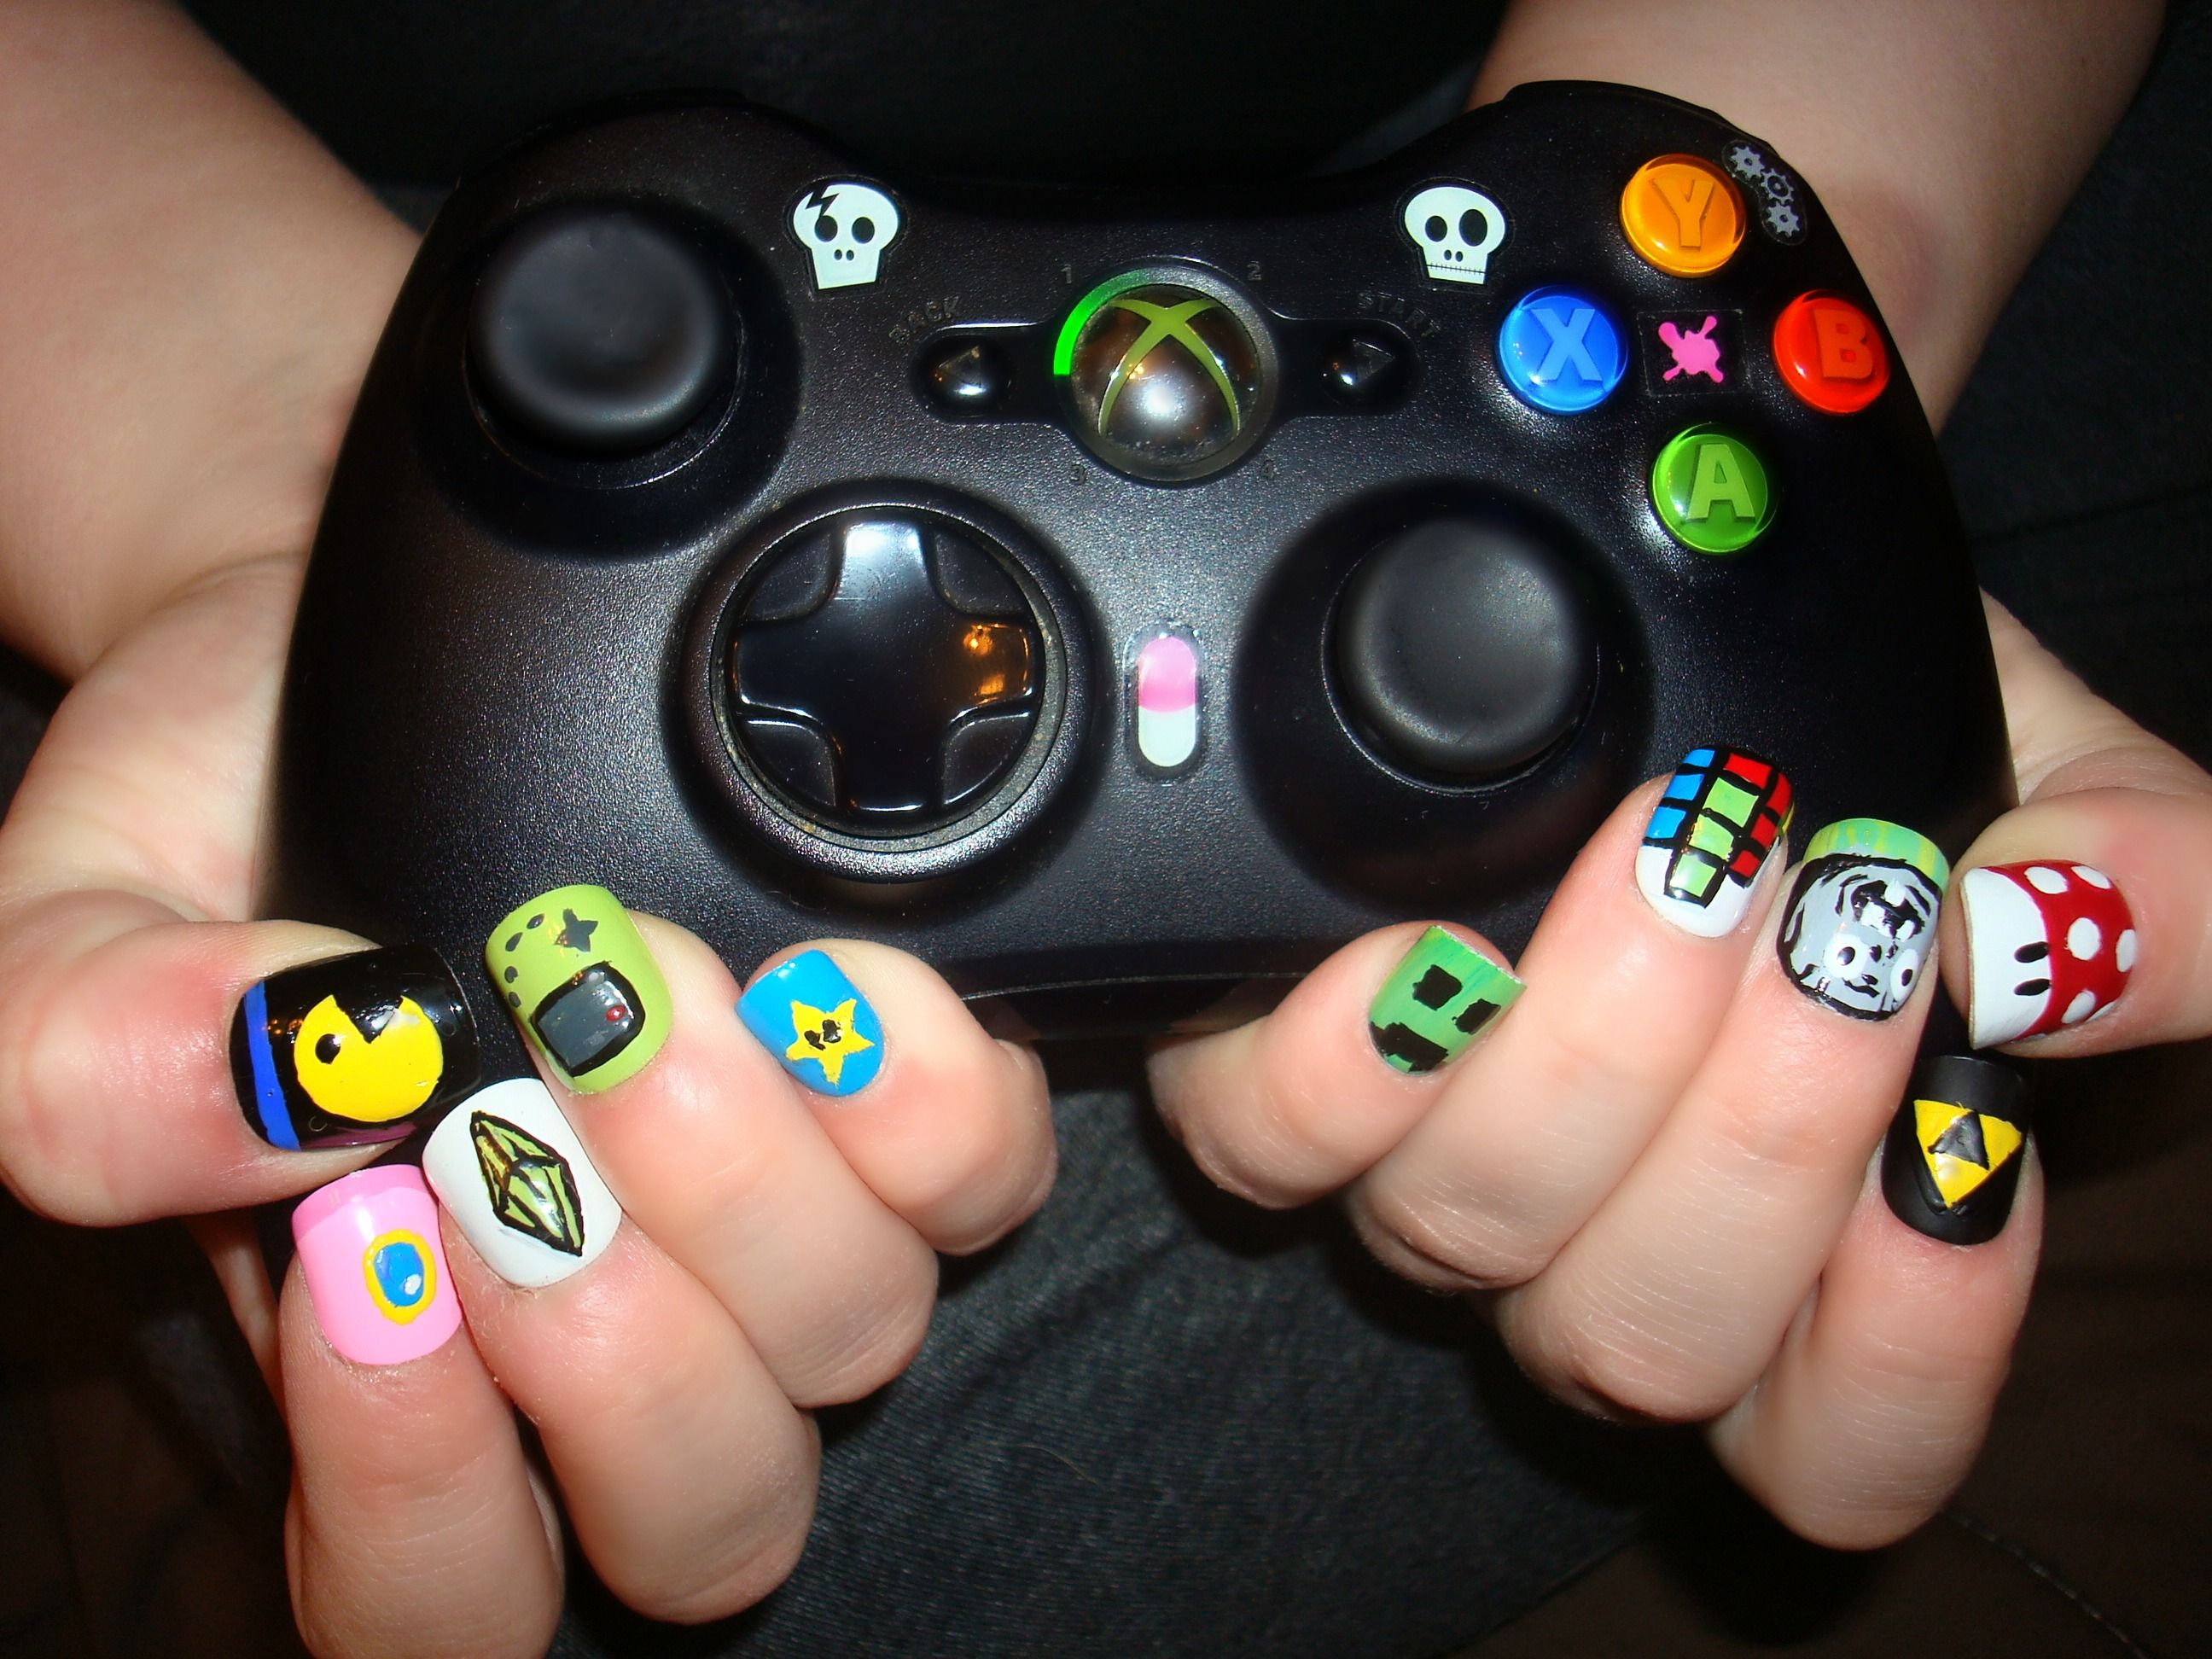 Xbox video game inspired nail art by tara cook uas xbox video game inspired nail art by tara cook prinsesfo Images